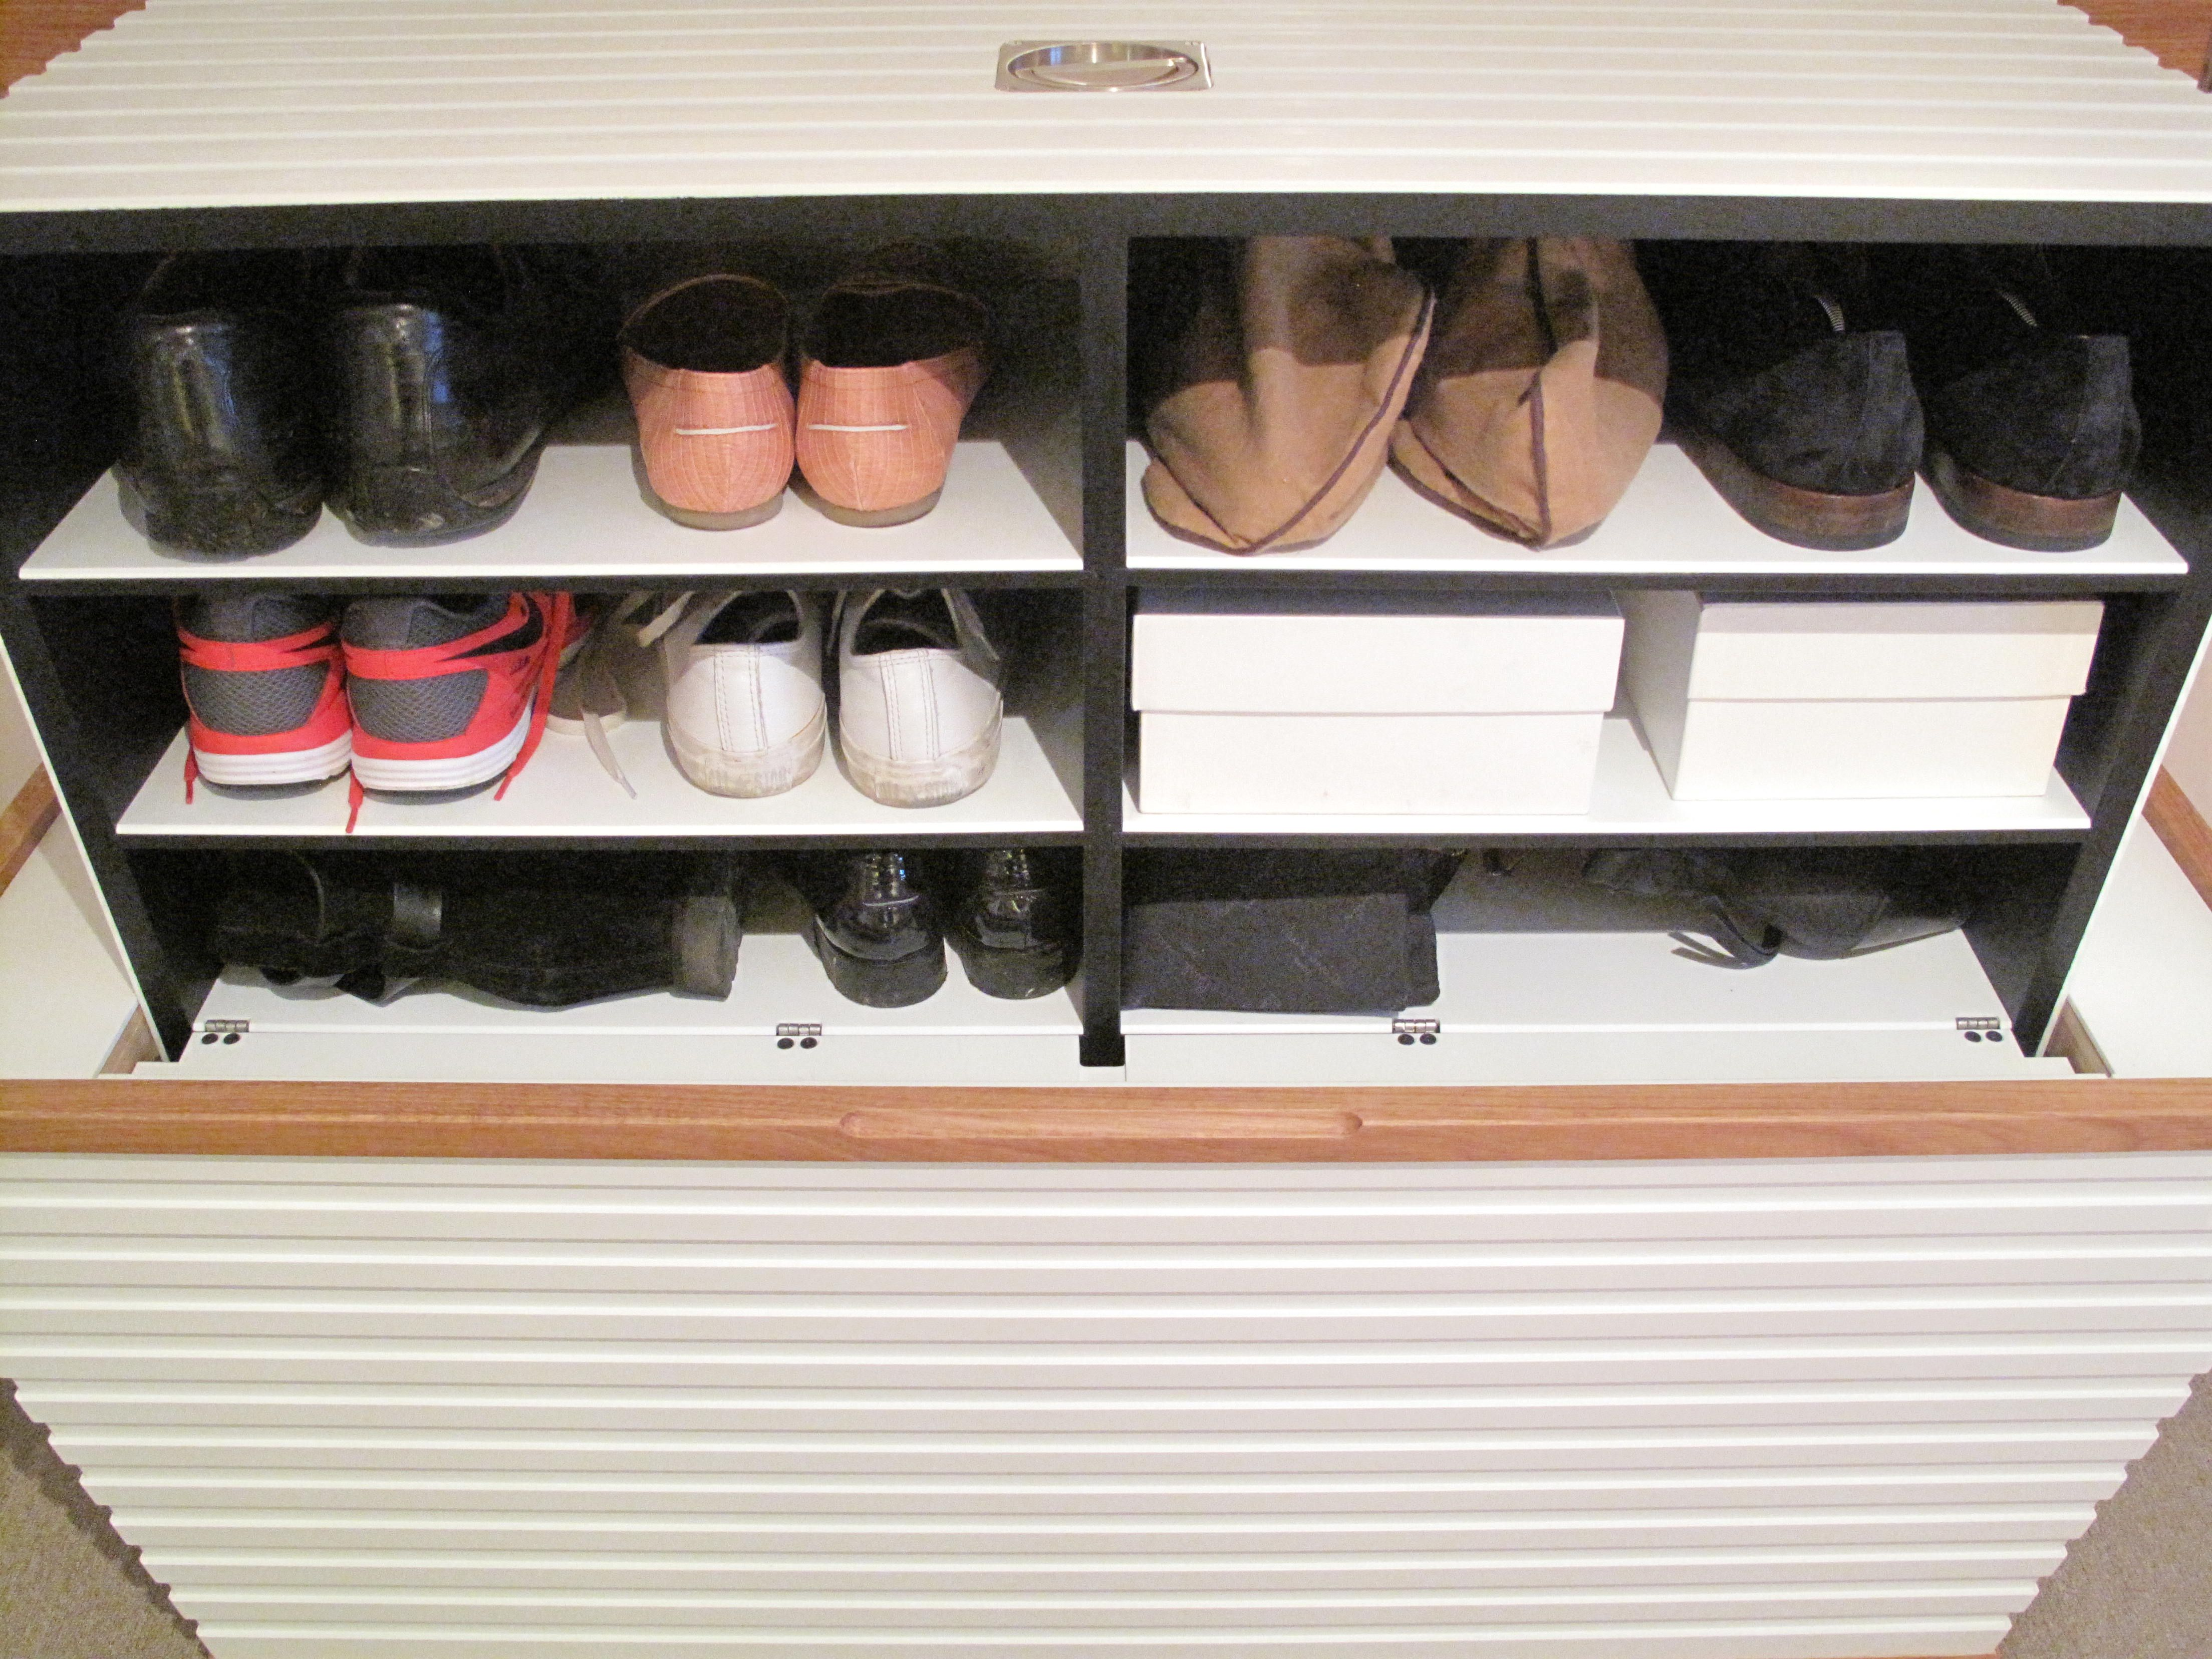 Front View Of Shoebox With Shoe Storage In Open Position